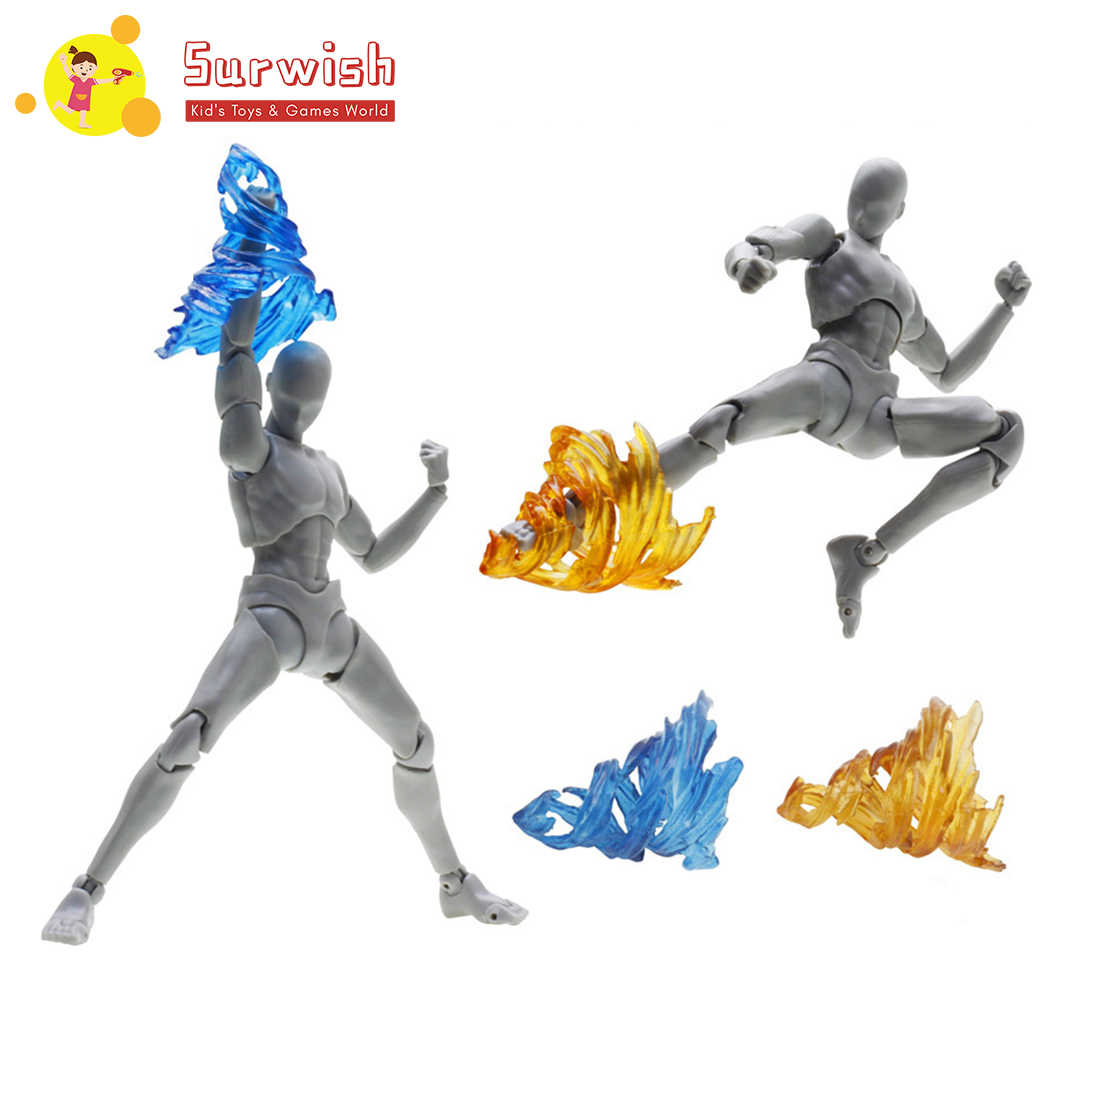 Surwish Model Whirlwind Kick Effect Decoration Whirlwind Model For General Scale Model - Transparent 7 Color